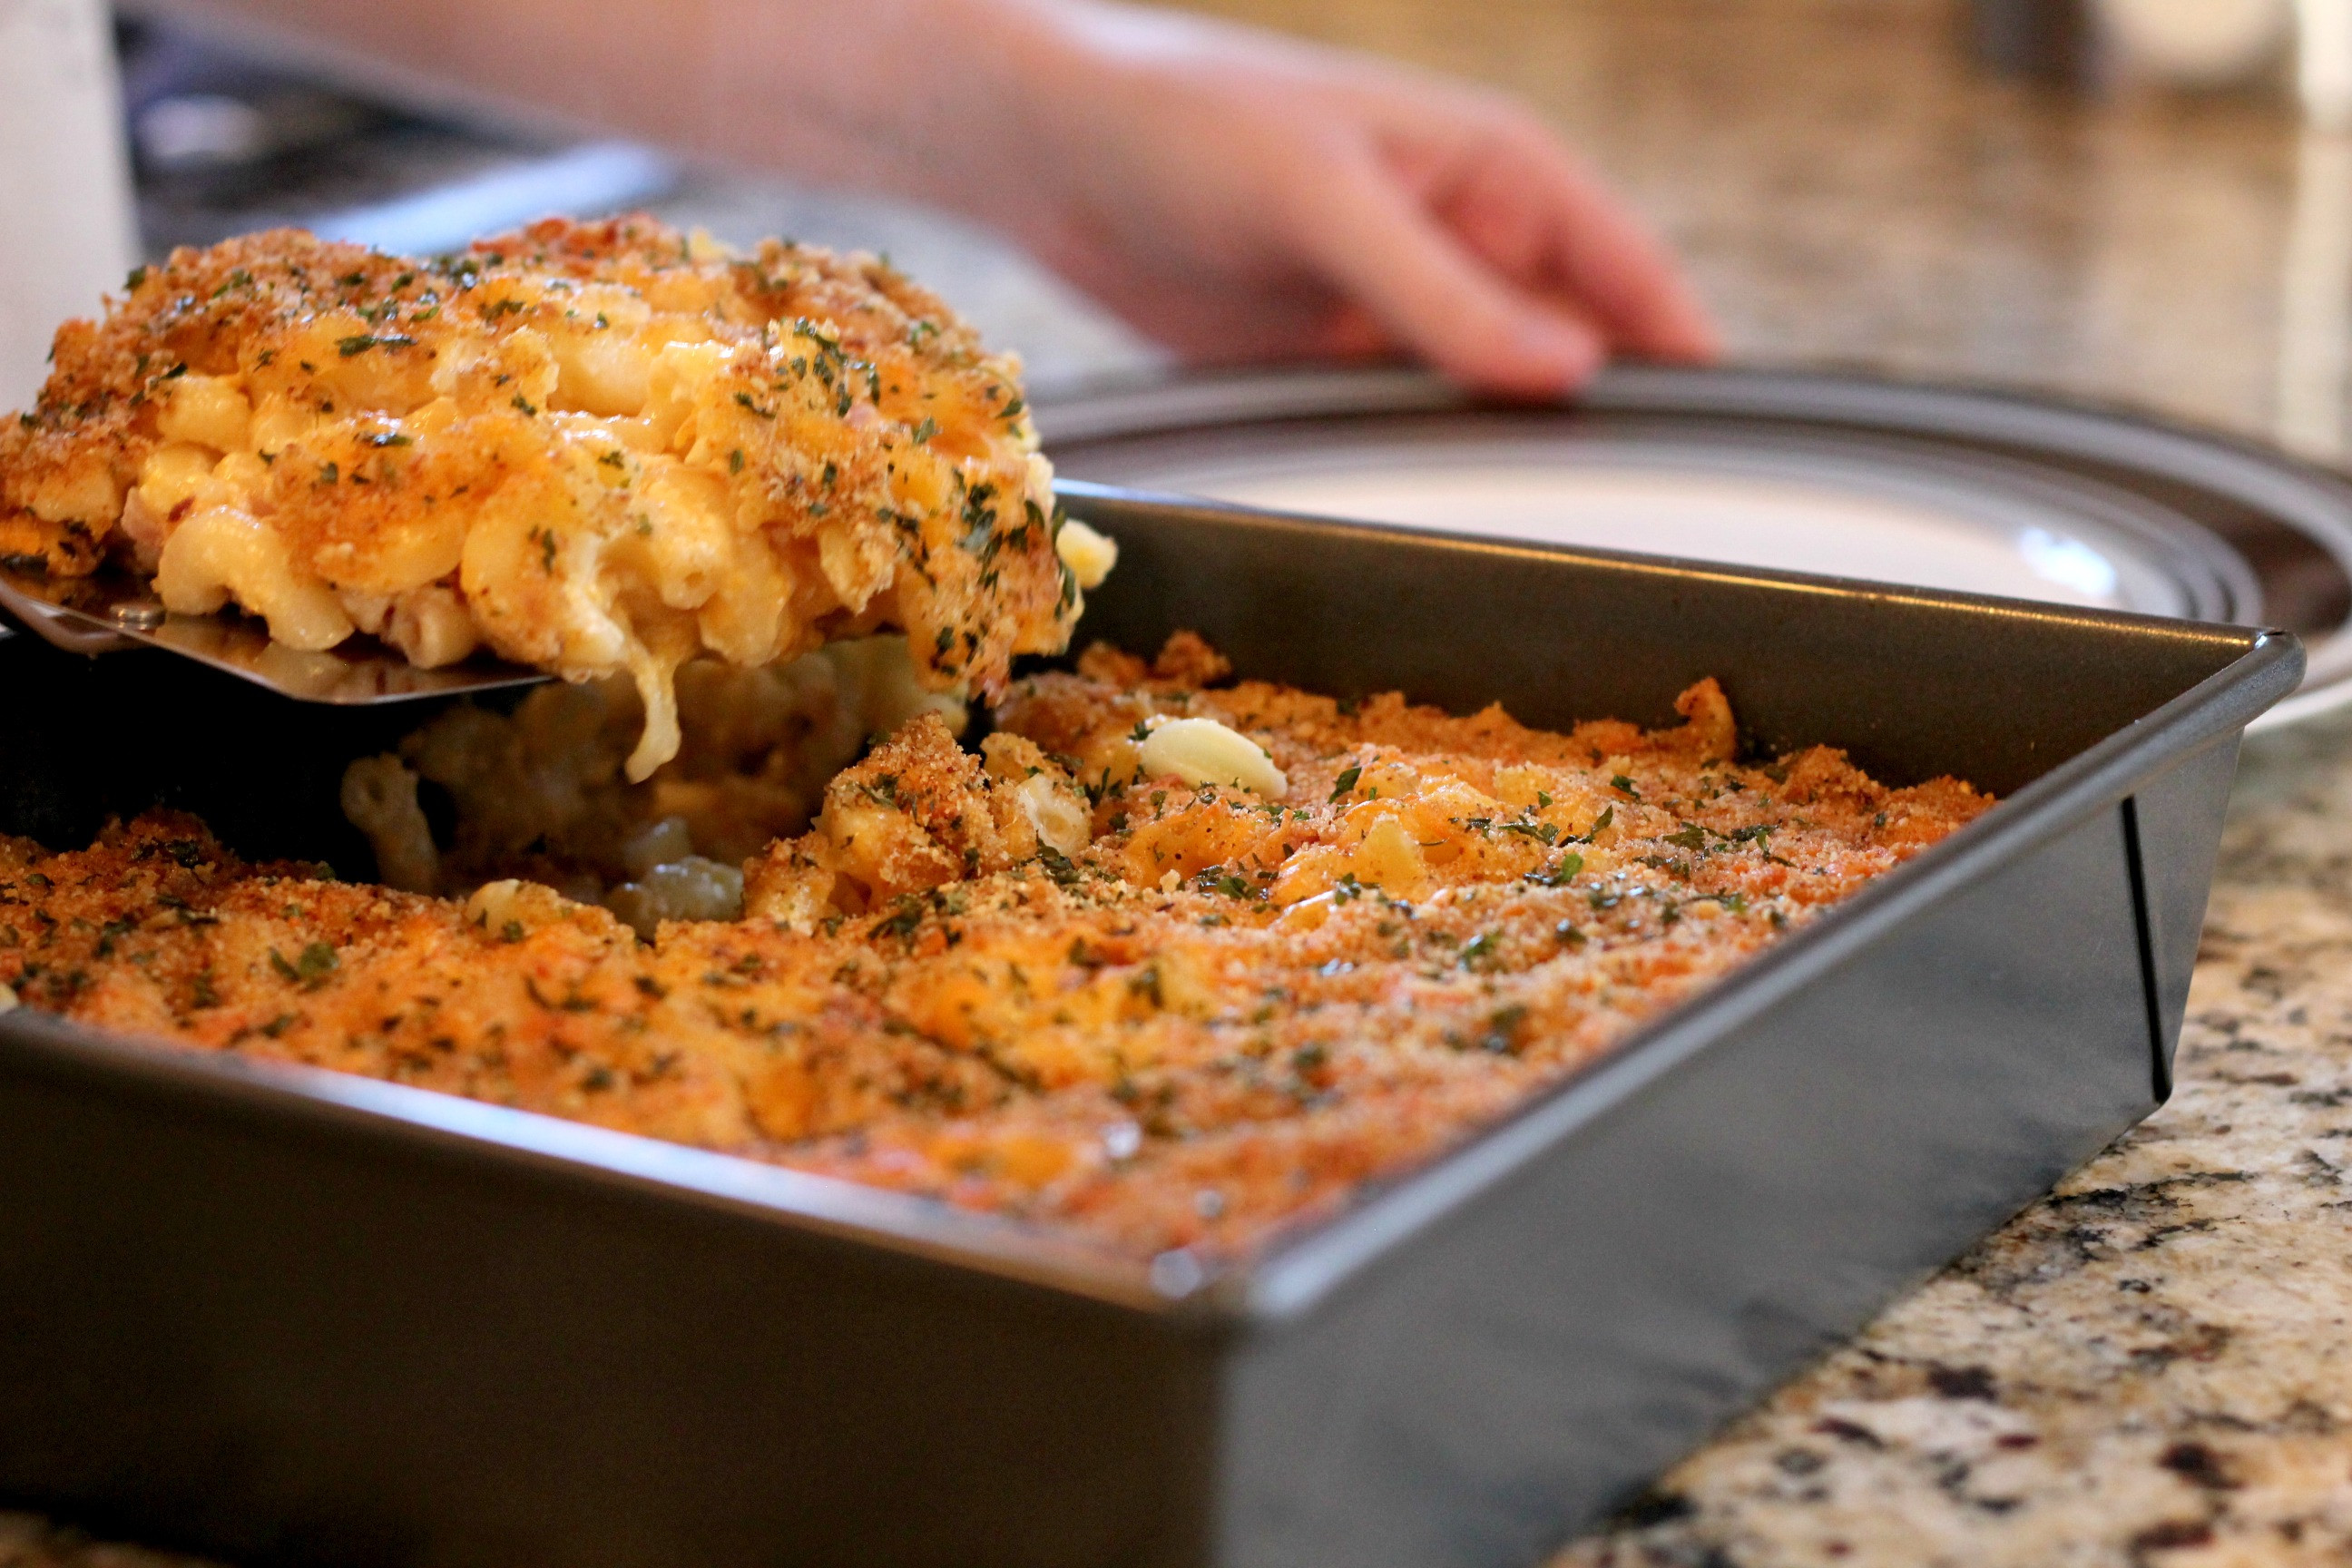 Baked Mac And Cheese Recipes With Bread Crumbs  Baked Mac N Cheese with Breadcrumbs and Red ions